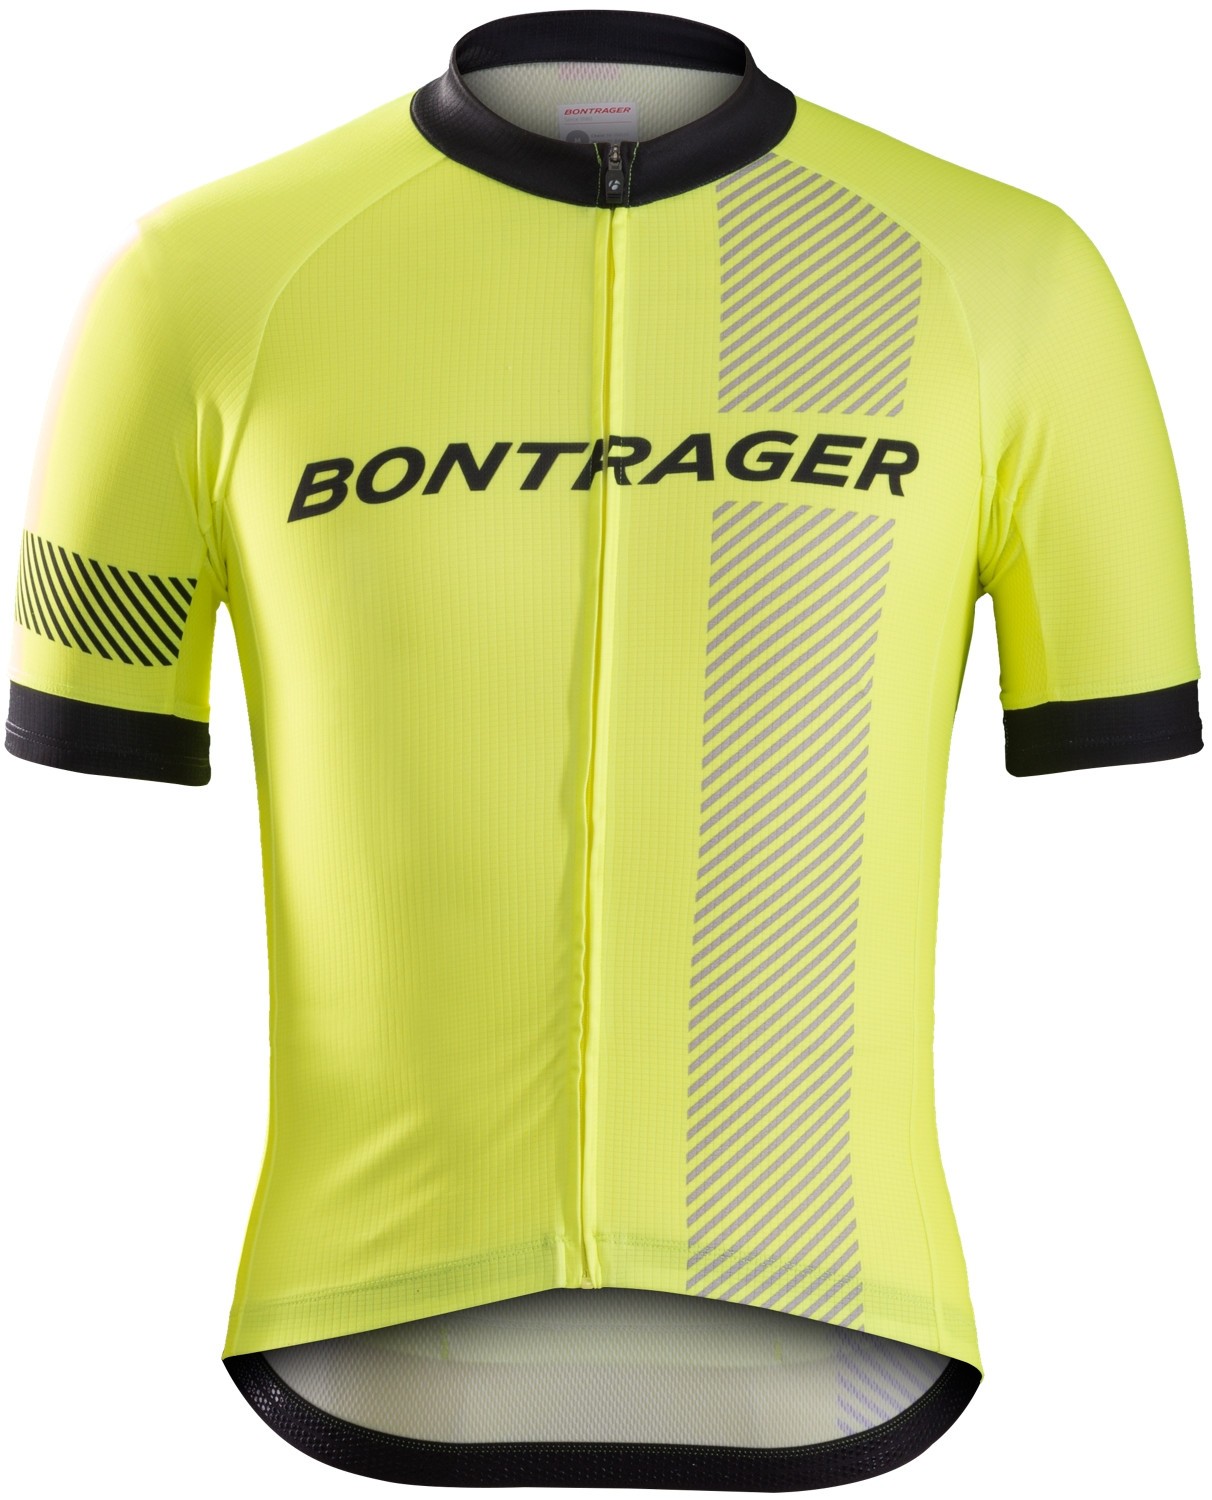 df1a69a8e Bontrager Specter Cycling Jersey - Mens - Jerseys - Clothing - Shop ...